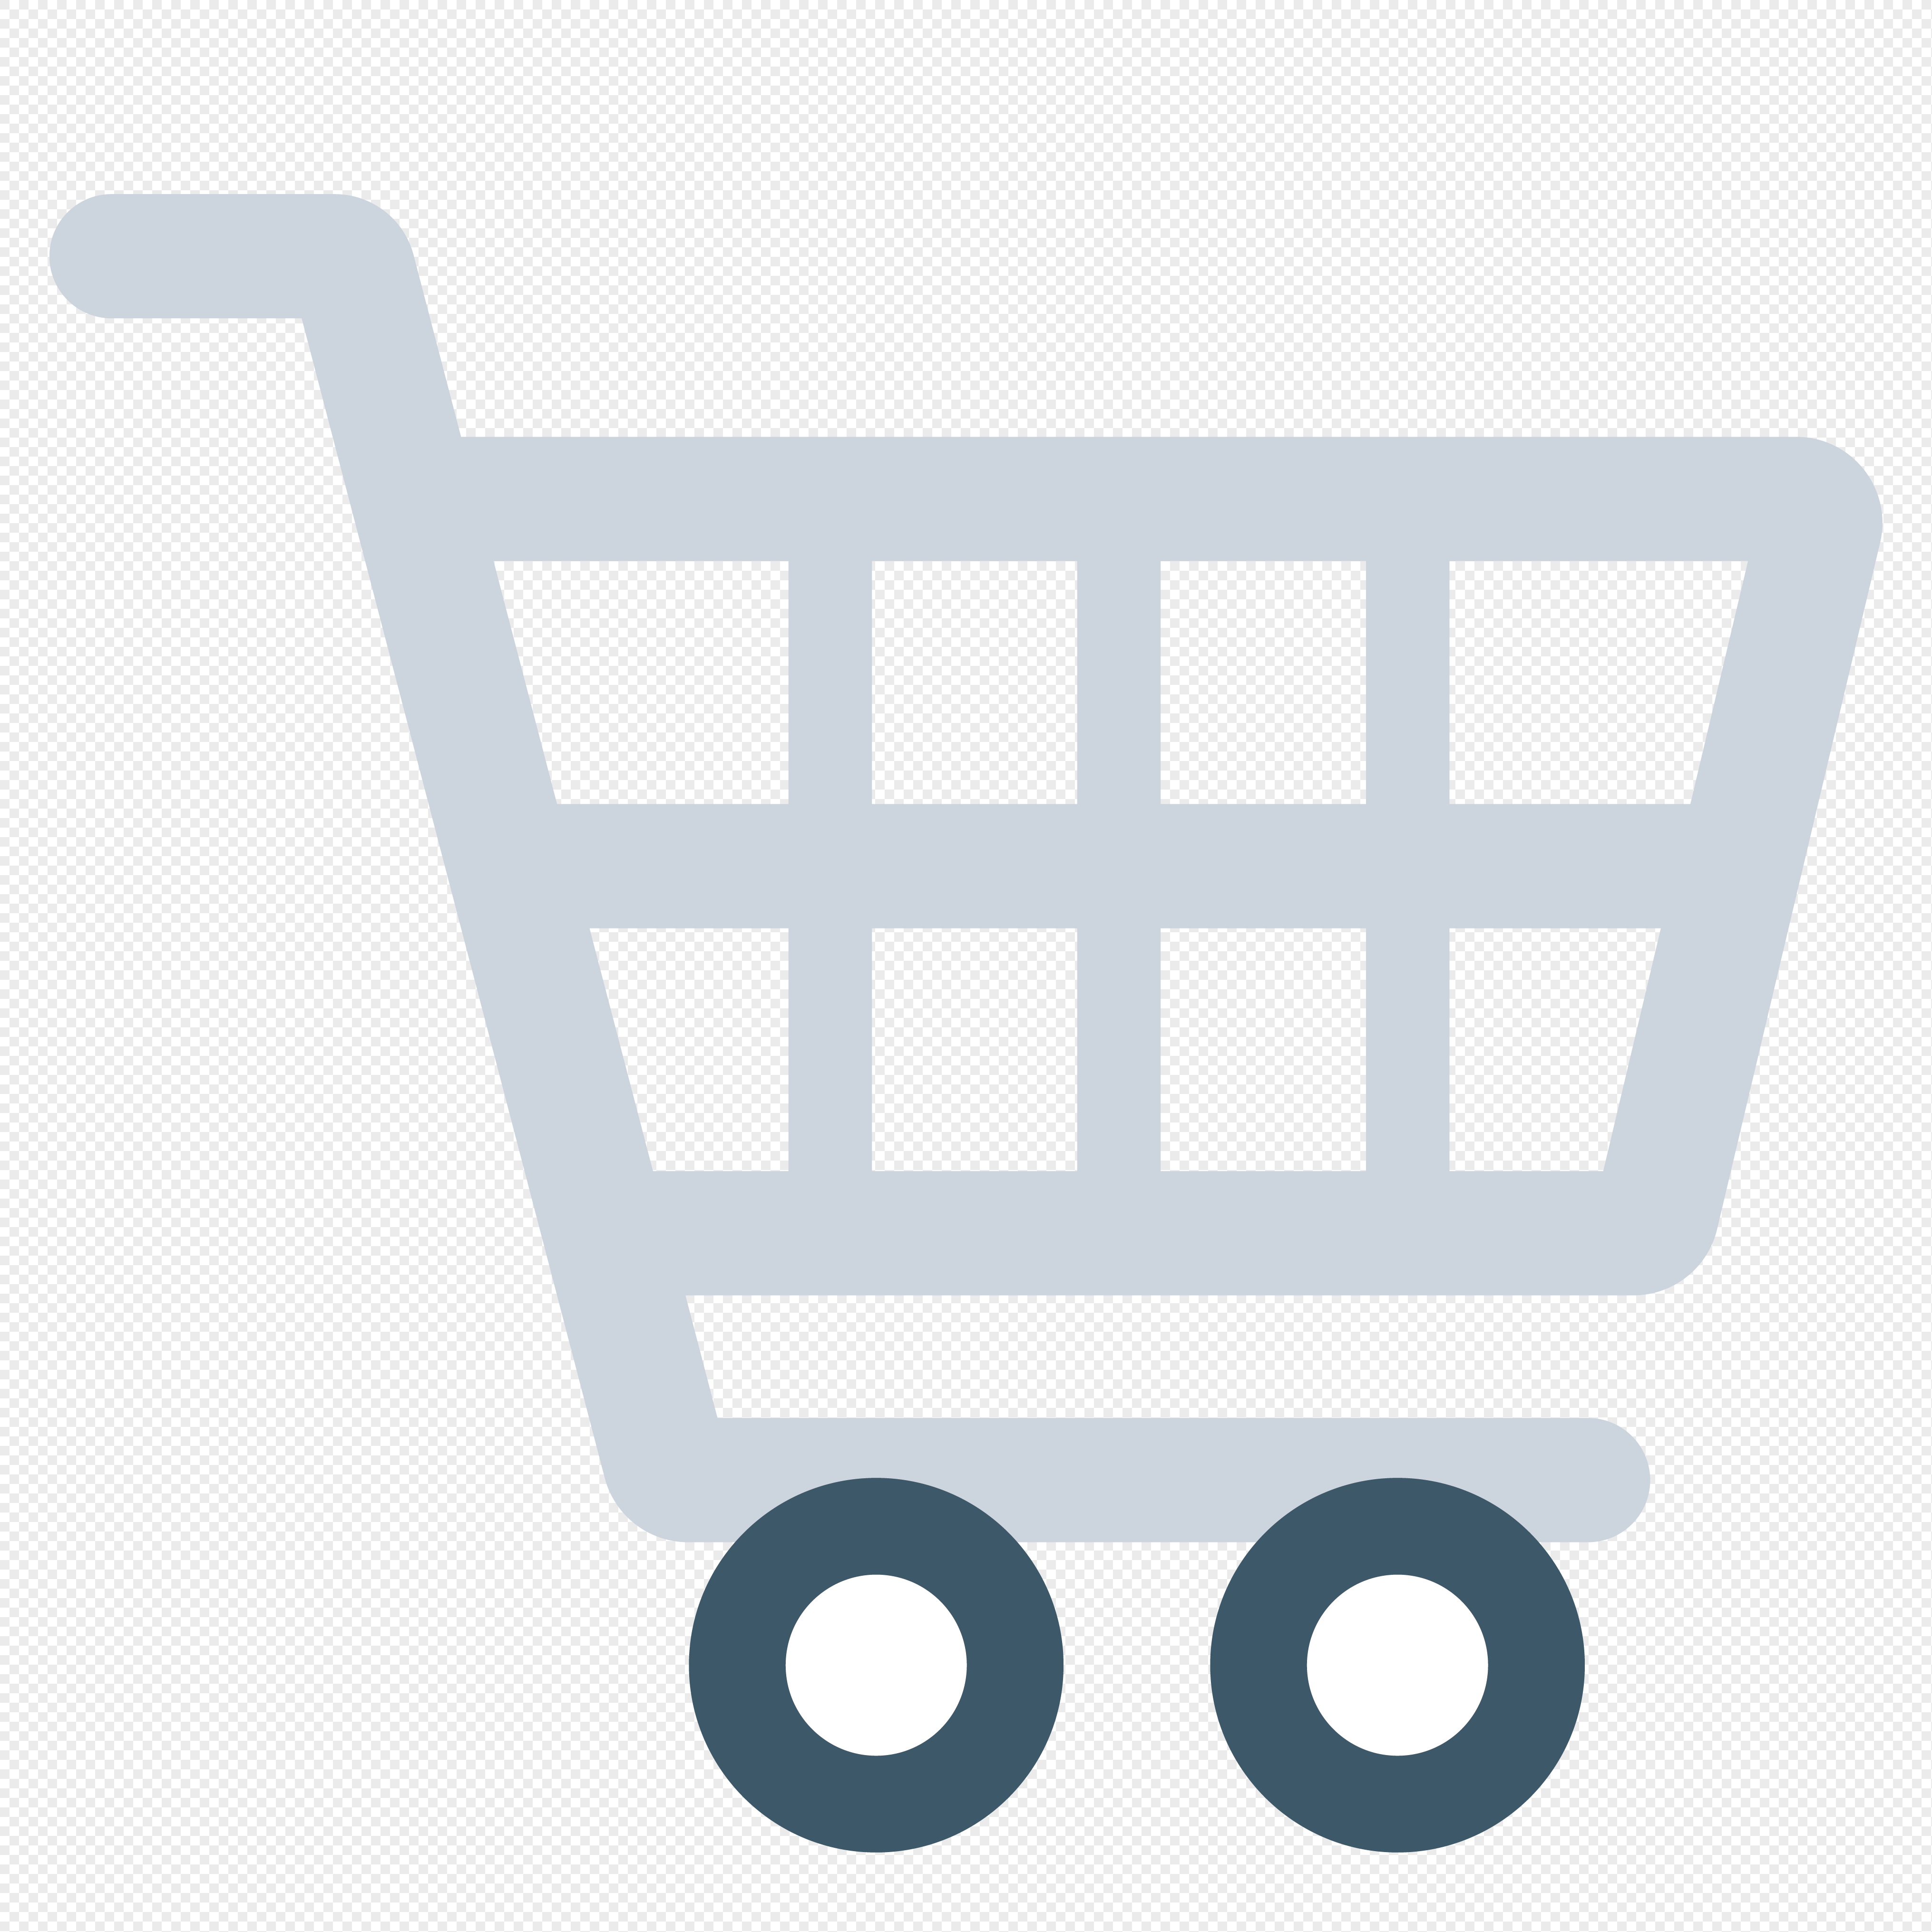 4062x4062 Cartoon Shopping Cart Vector Material Png Image Picture Free